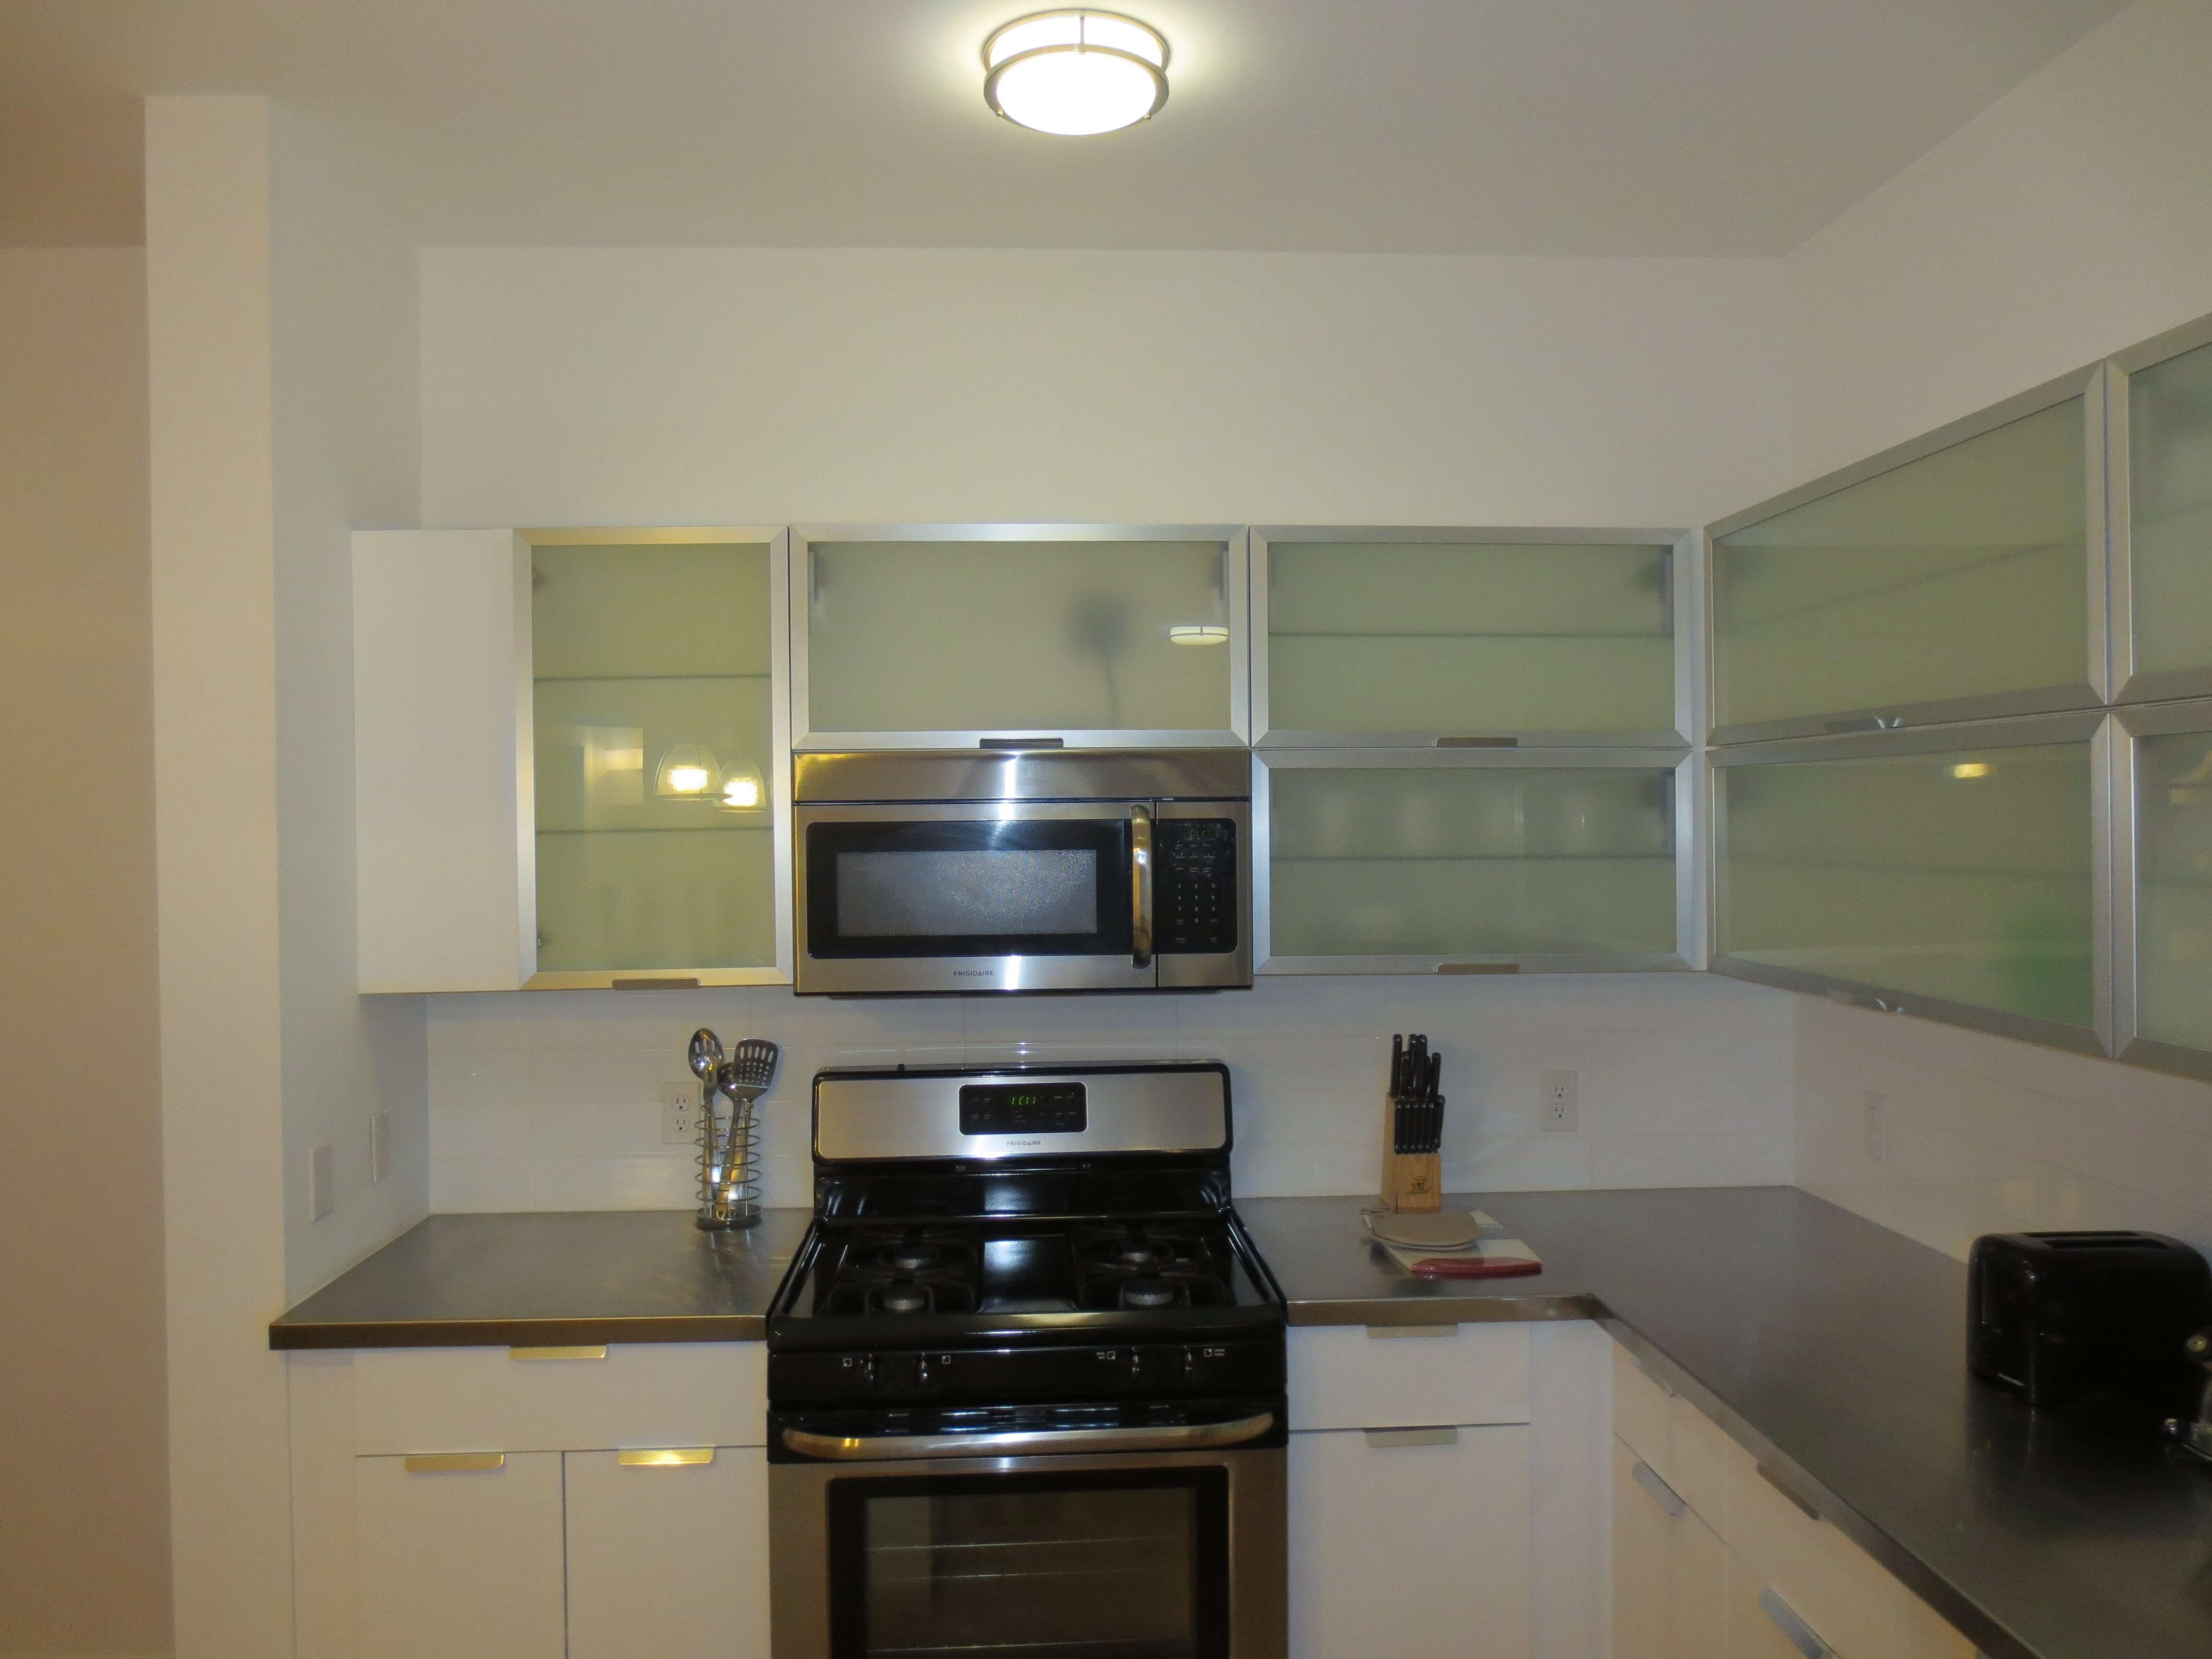 furnished 1 bedroom apartment for rent in stamford southwest ct